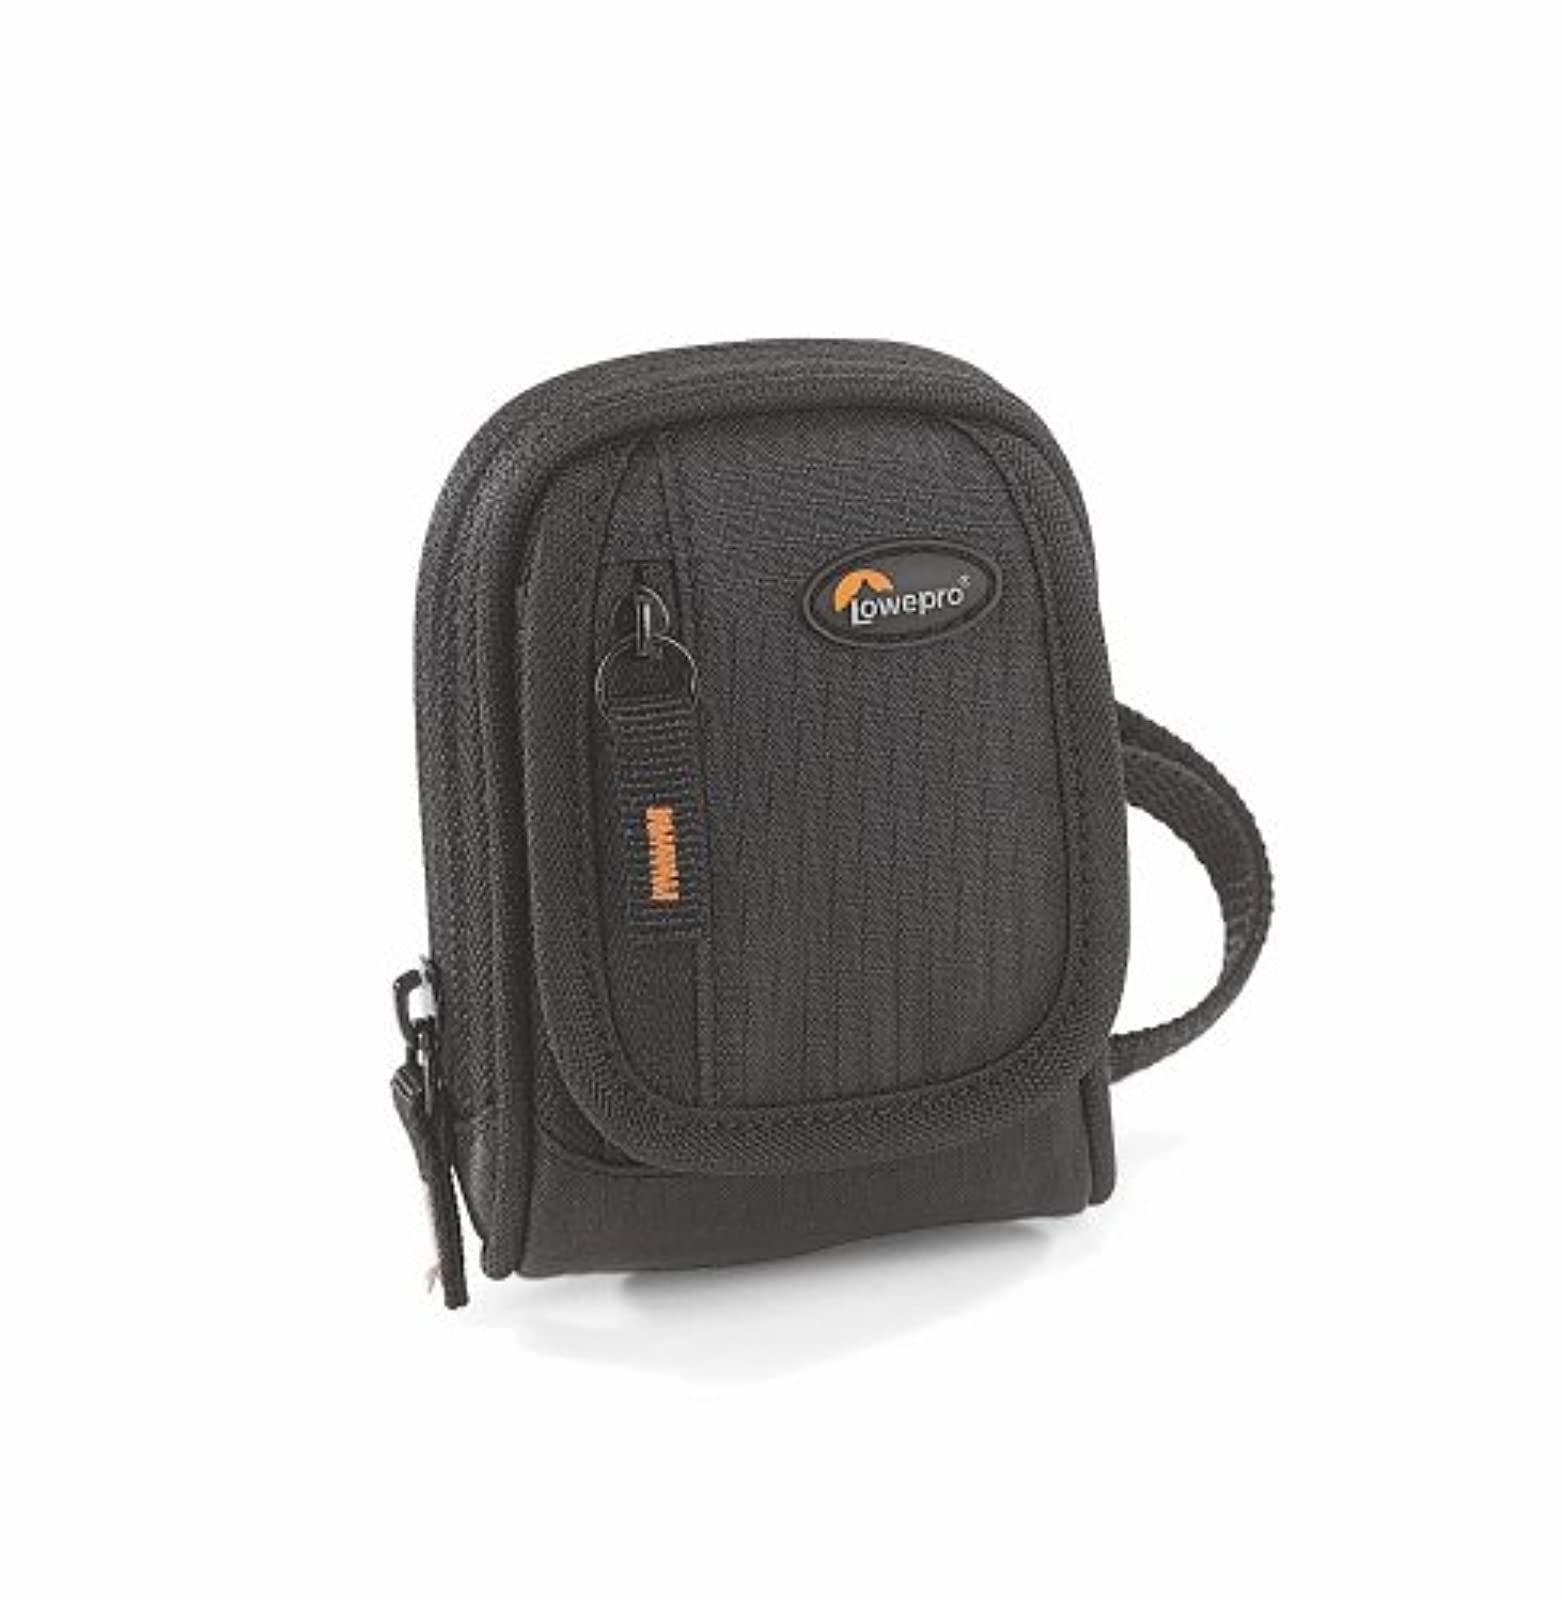 Lowepro Ridge 10 Camera Case Black Camera: Point & Shoot Compact